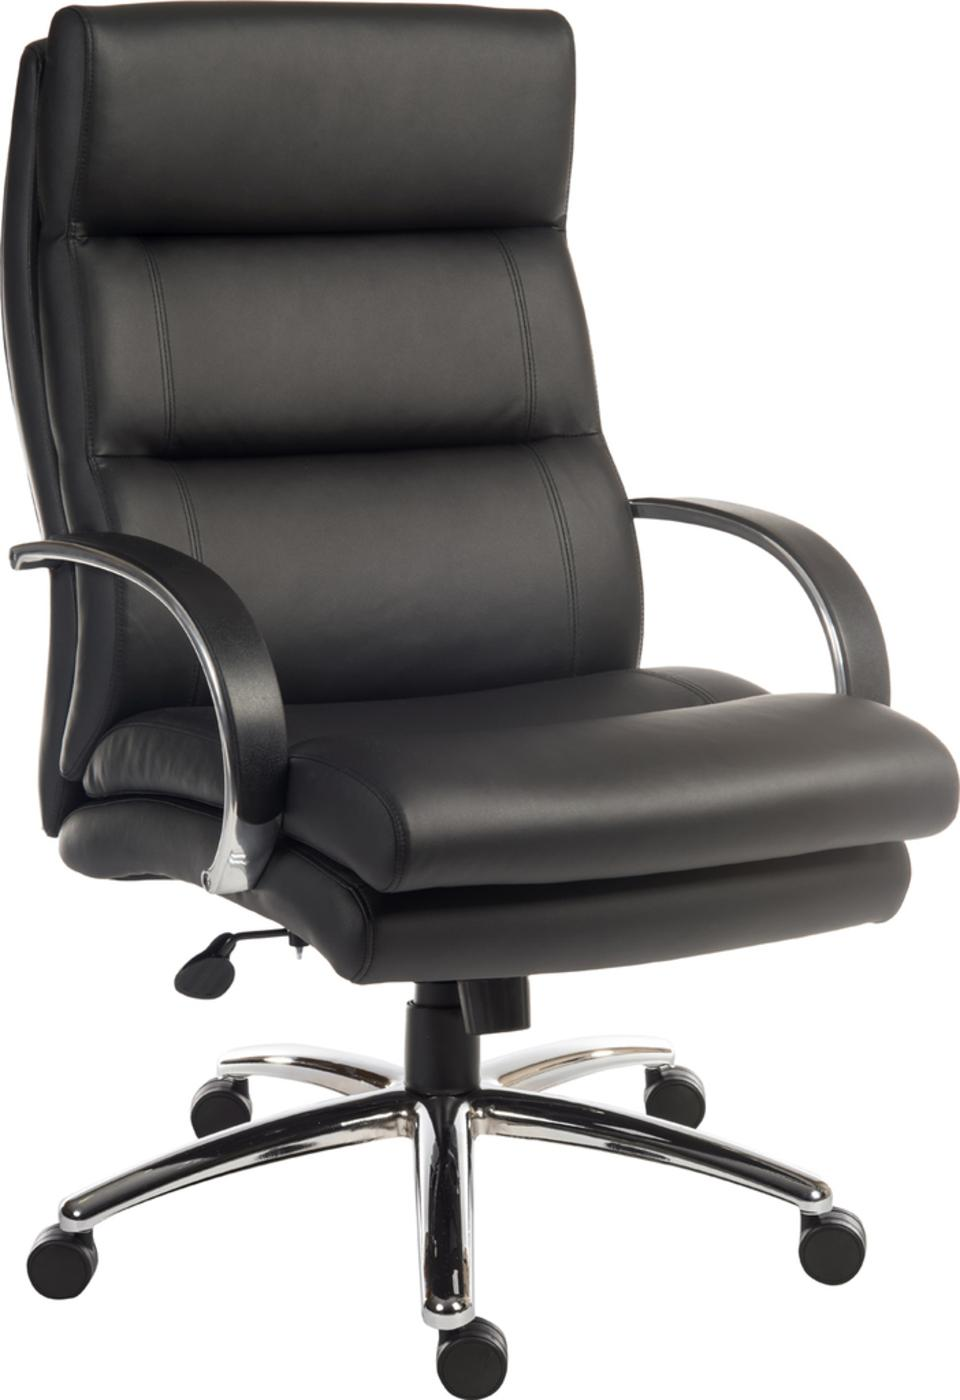 Samson Heavy Duty Leather Executive Chair